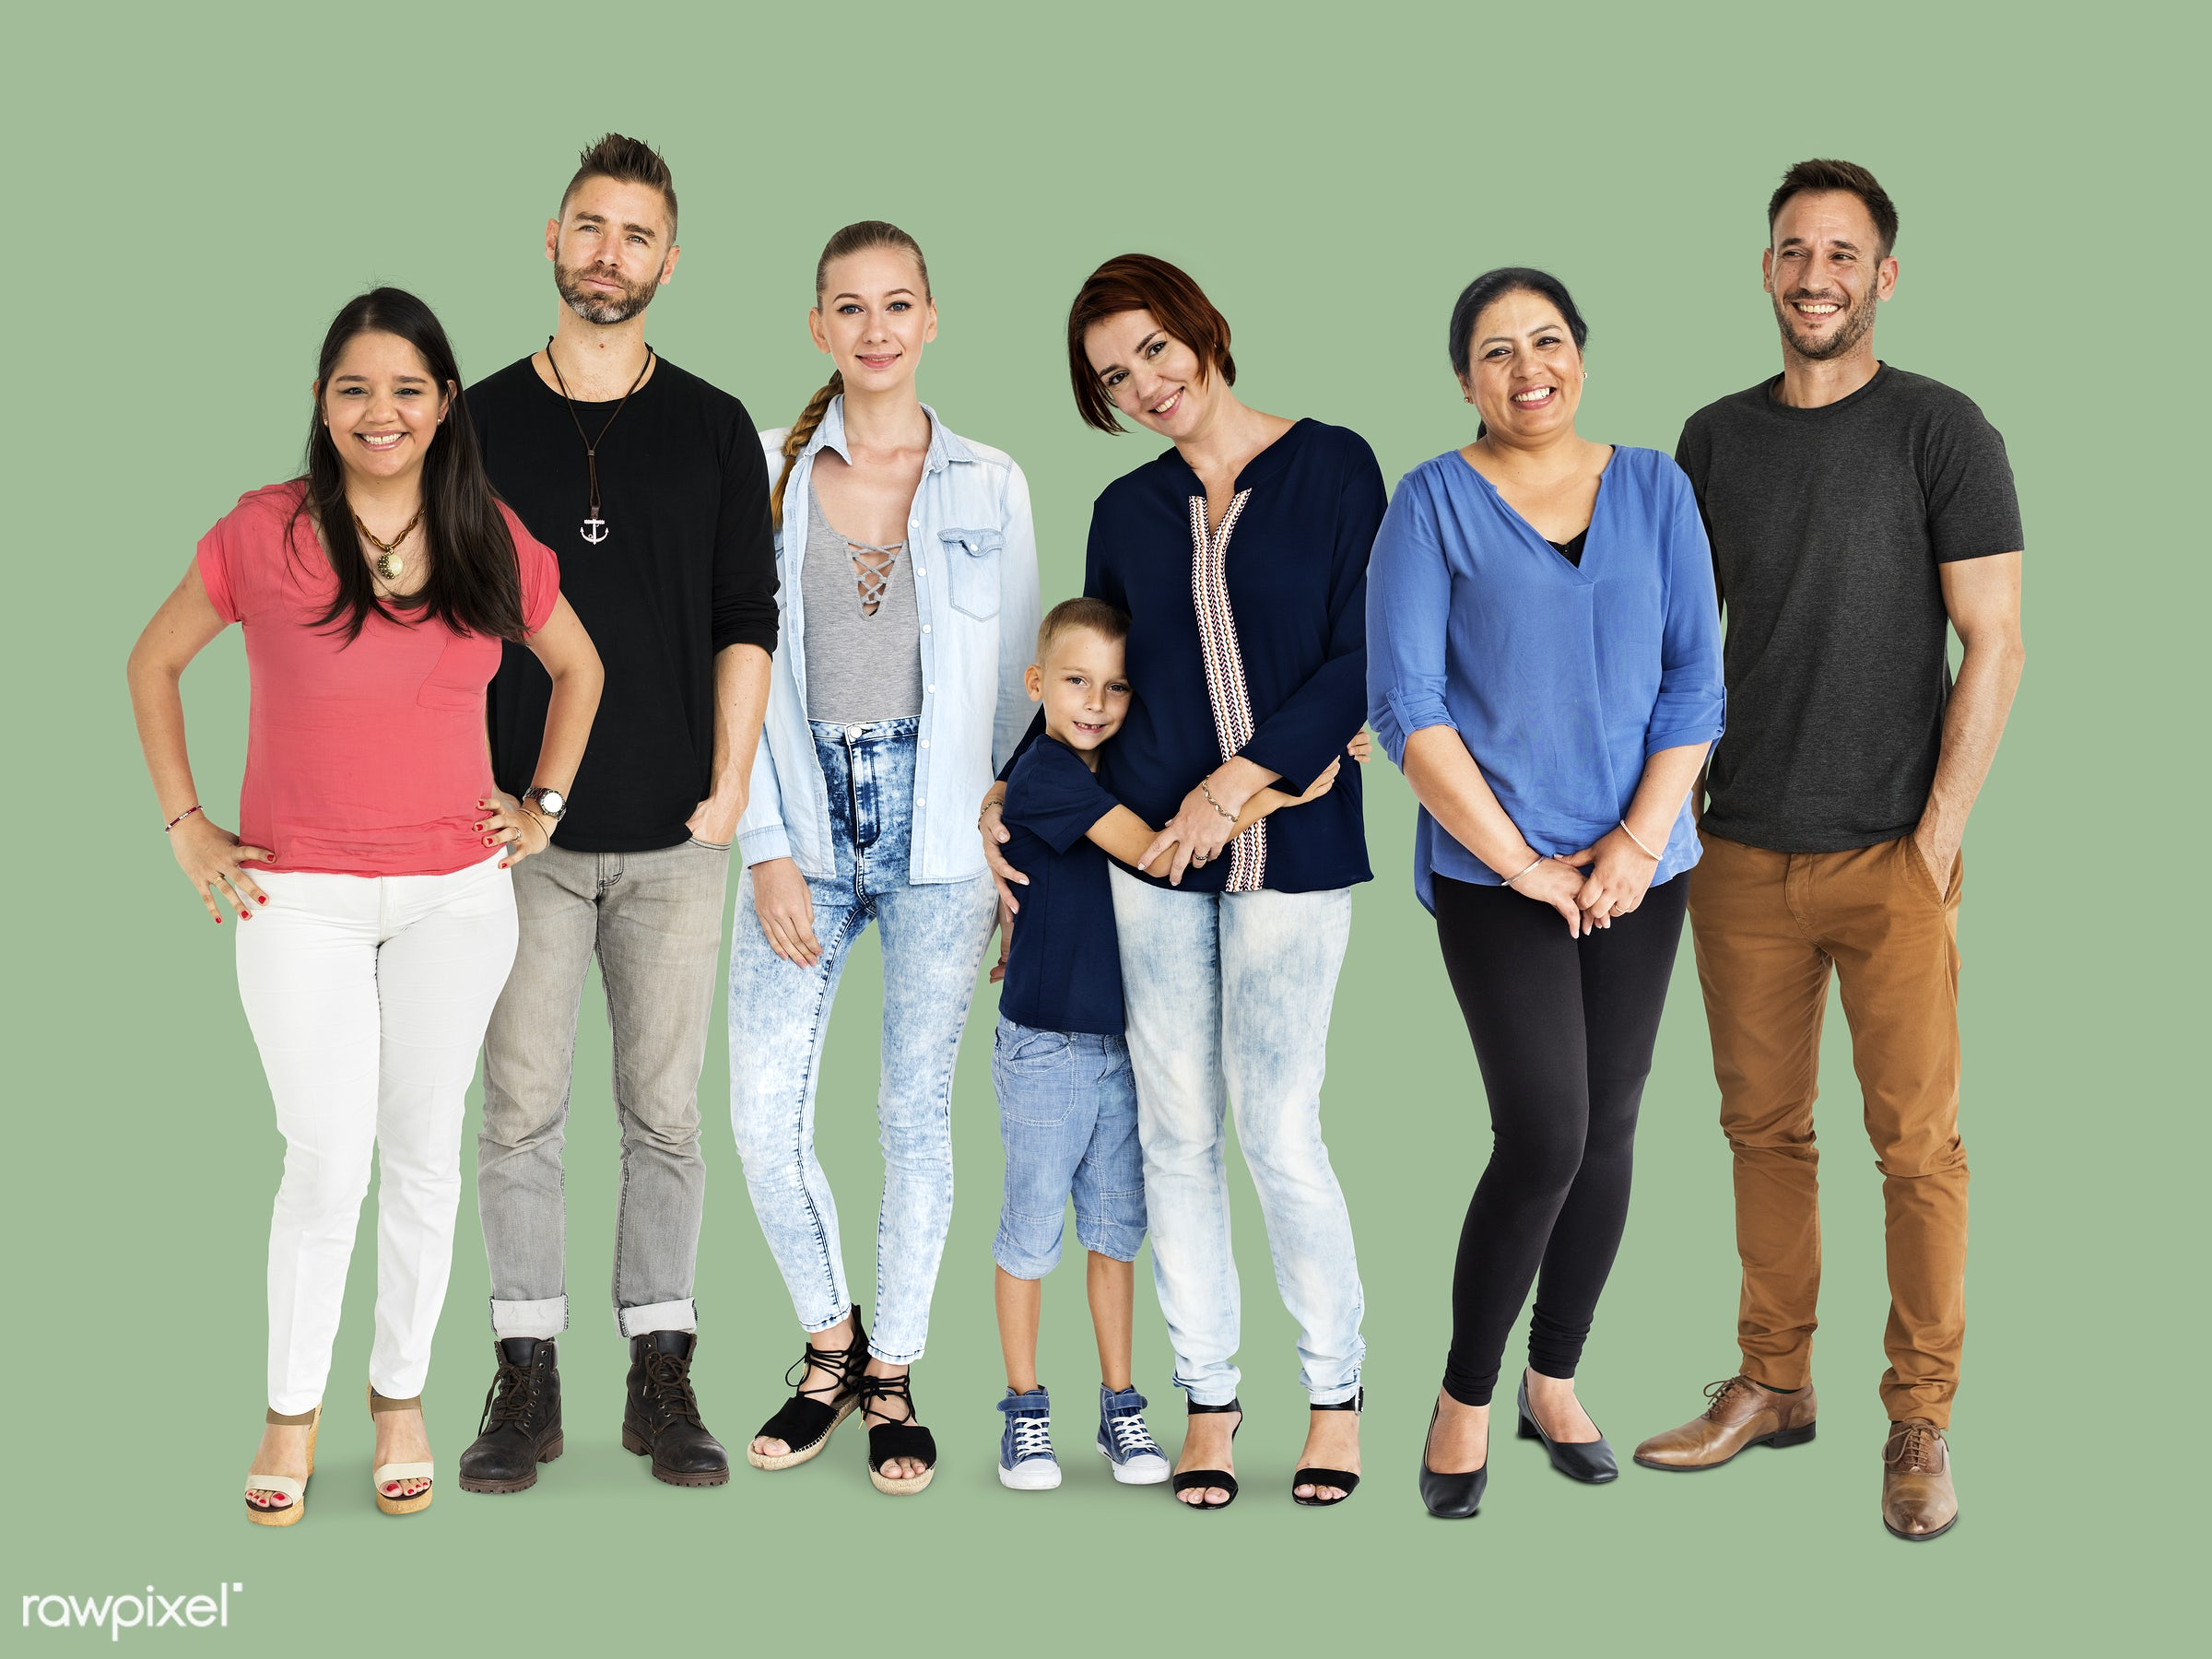 studio, person, diverse, people, together, kid, retirement, young adult, woman, lifestyle, studio squareset, smile, baby...